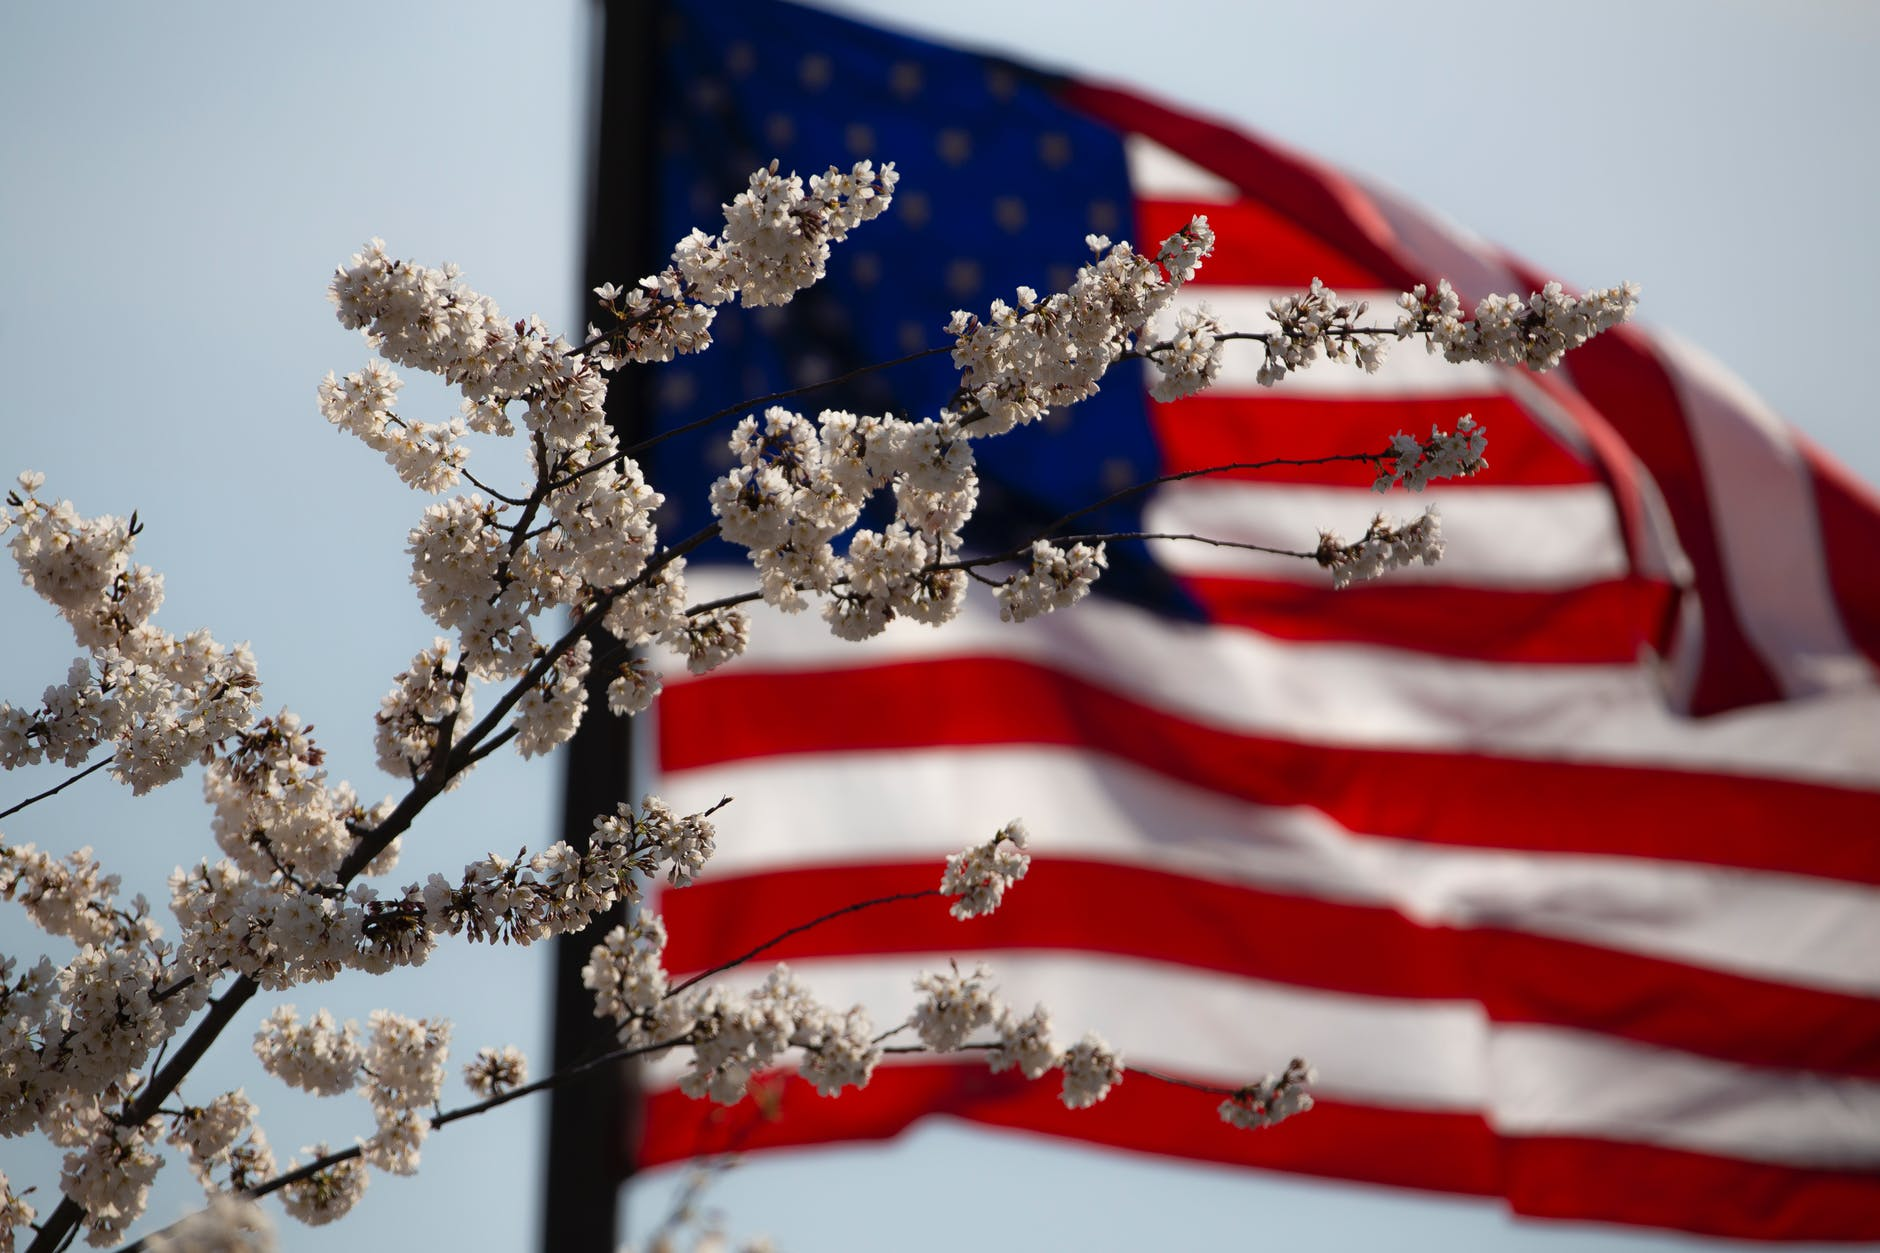 American flag behind flowers